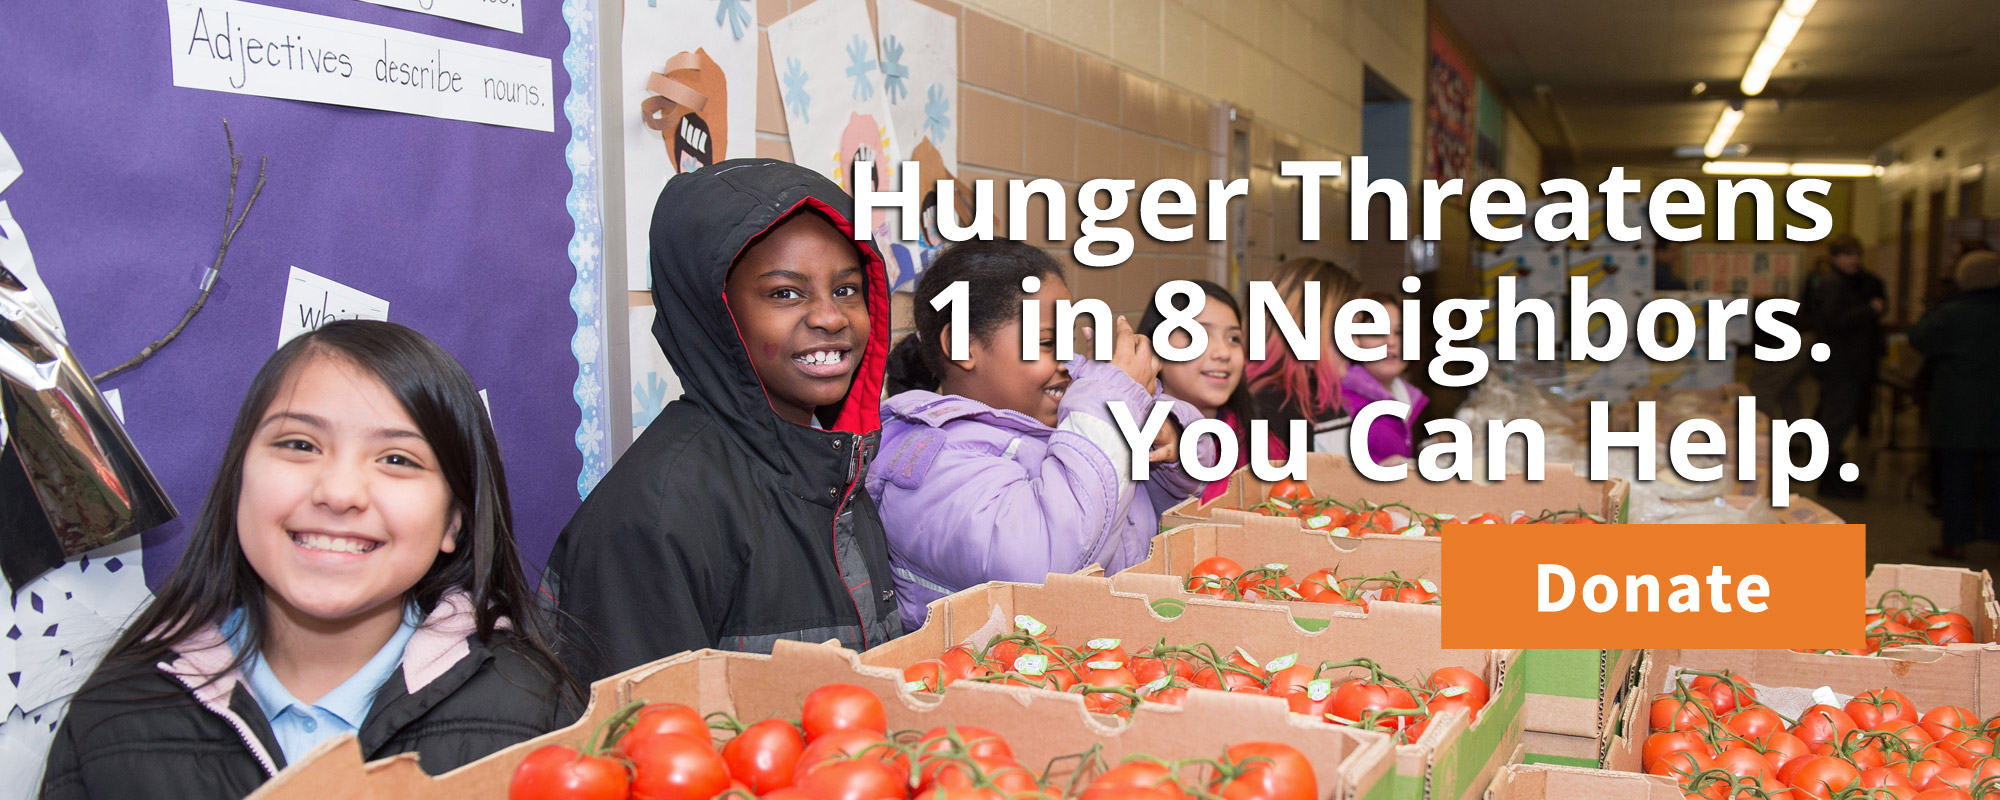 One in Eight Neighbors Struggle With Hunger - Give Today